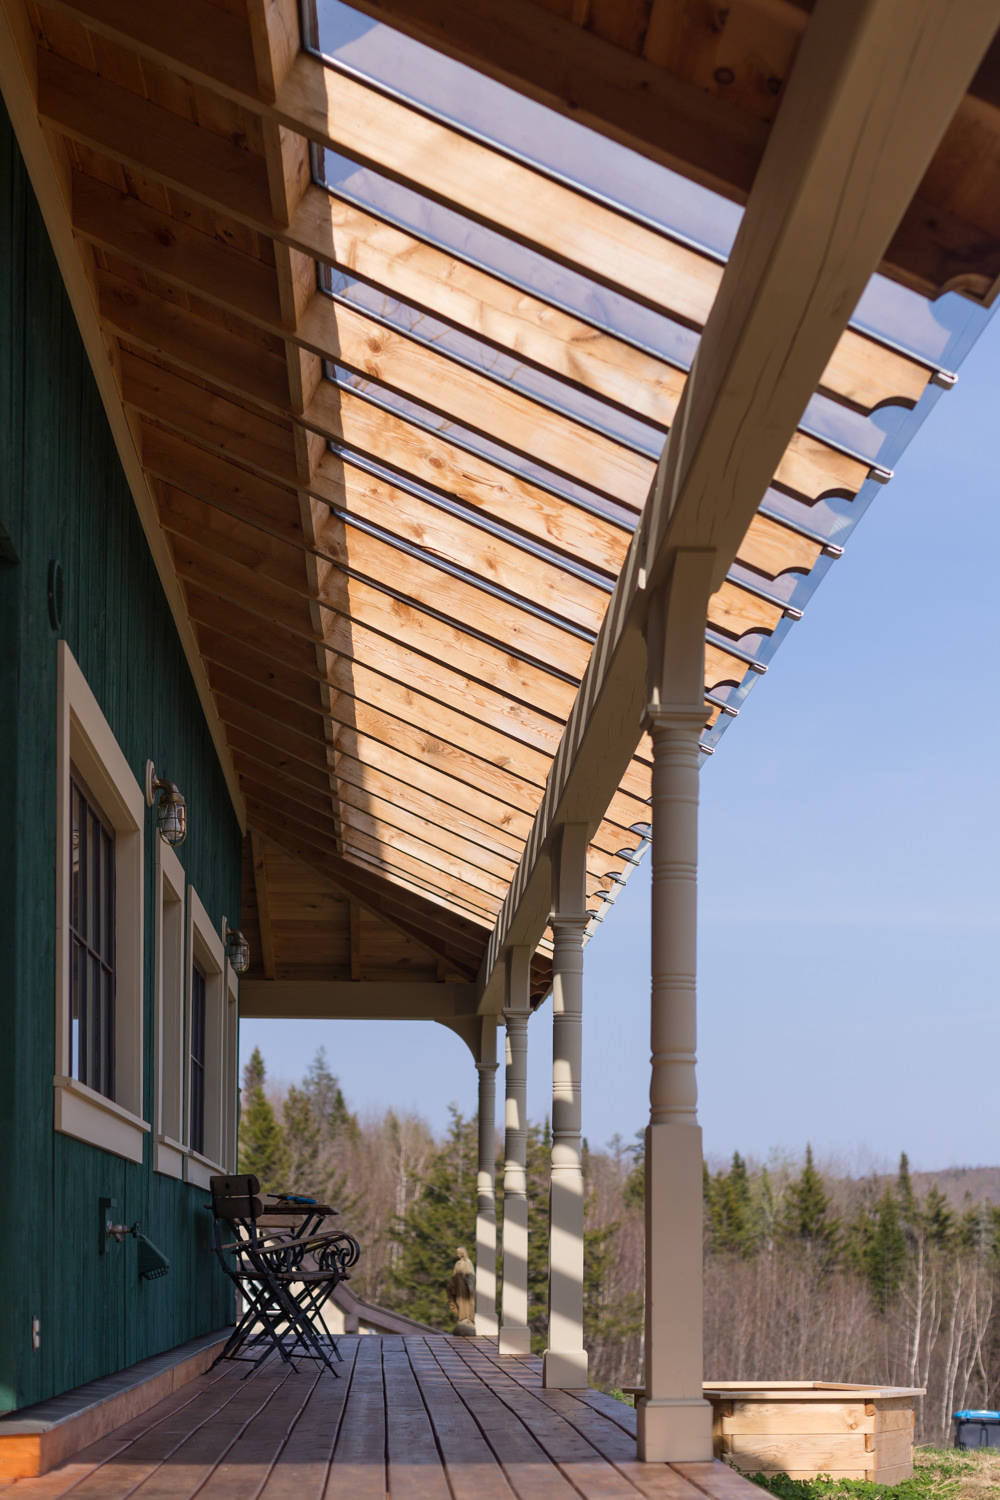 A view of pergola roof on the porch of a Central Vermont farmhouse designed by New Frameworks Natural Building taken by architecture photographer Stina Booth